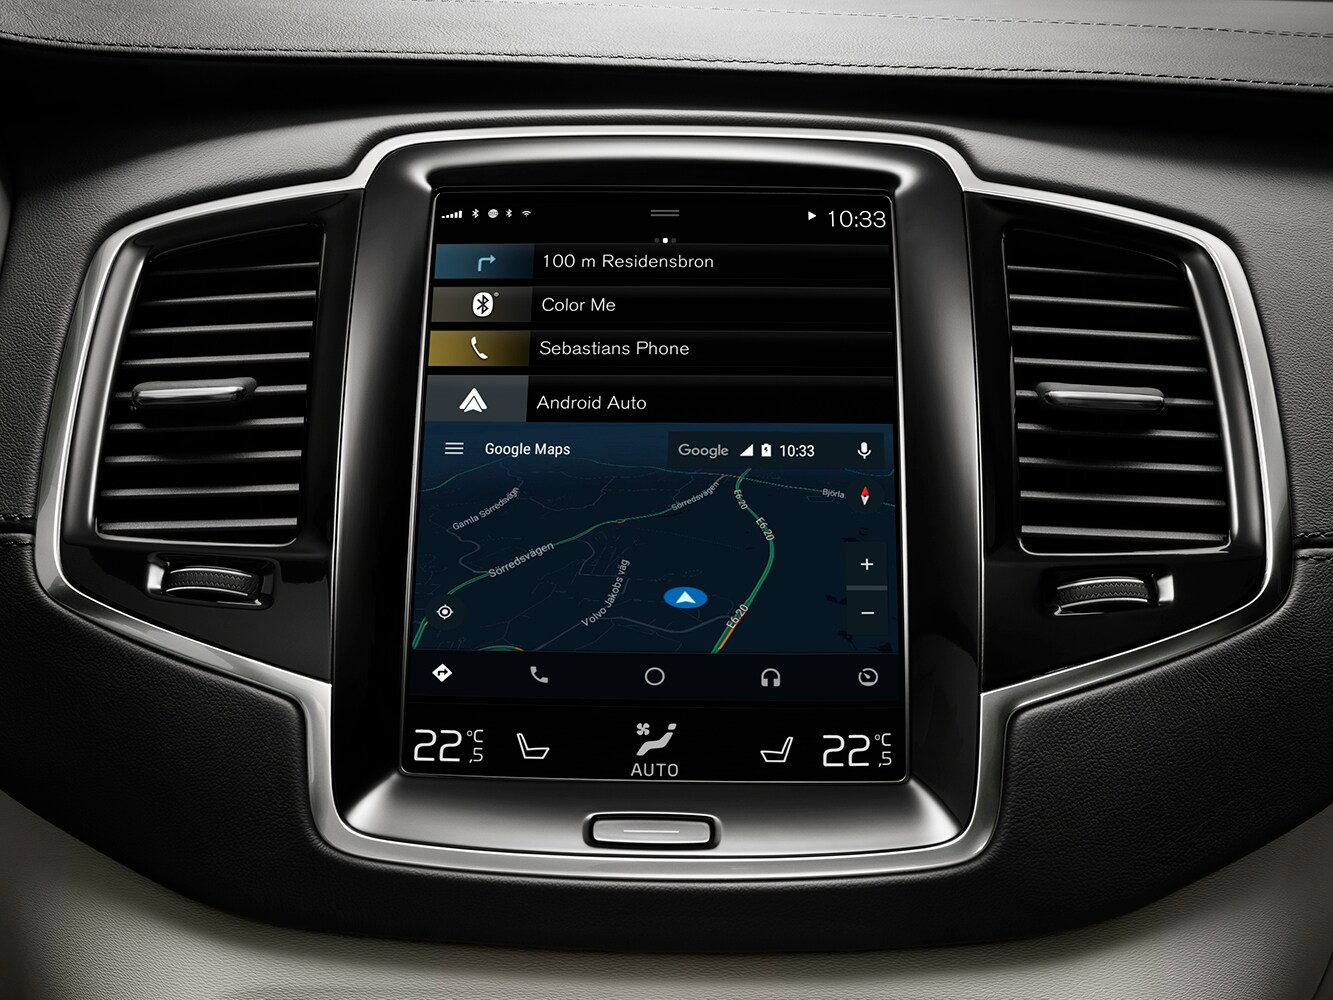 Close up of touch-screen centre dash board in the Volvo XC90